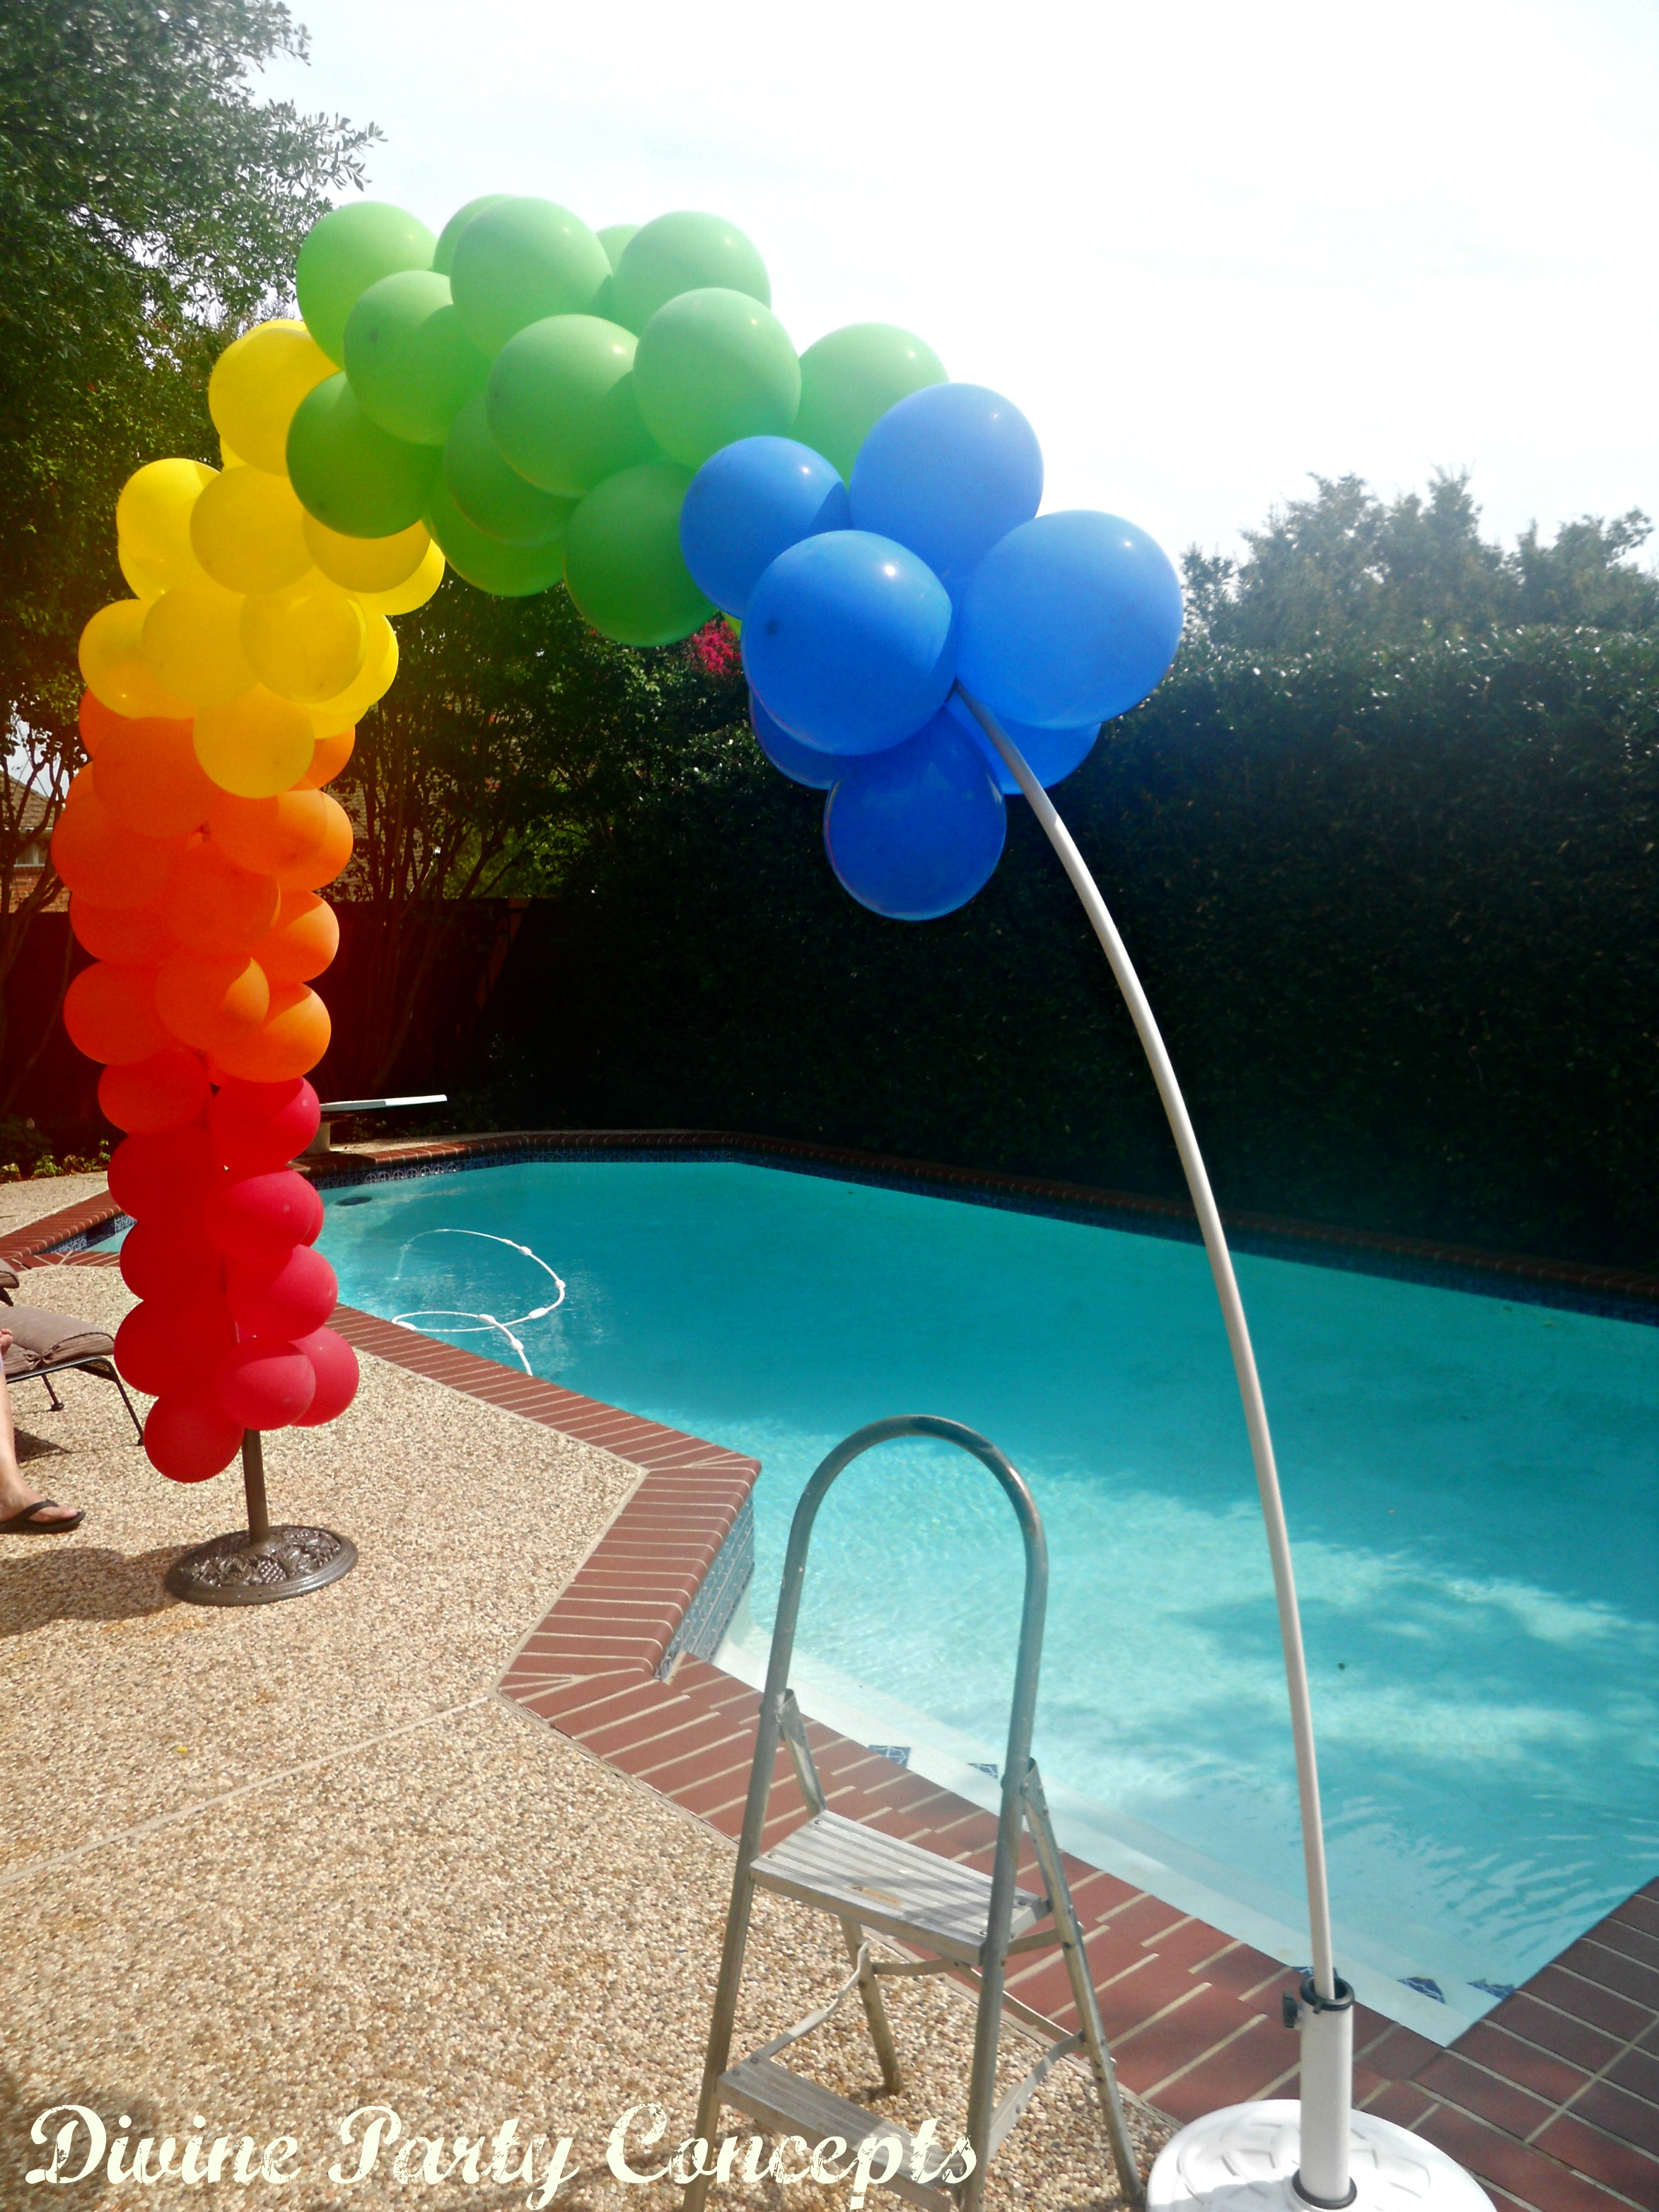 Kylie's Korner: How to Make a Balloon Arch